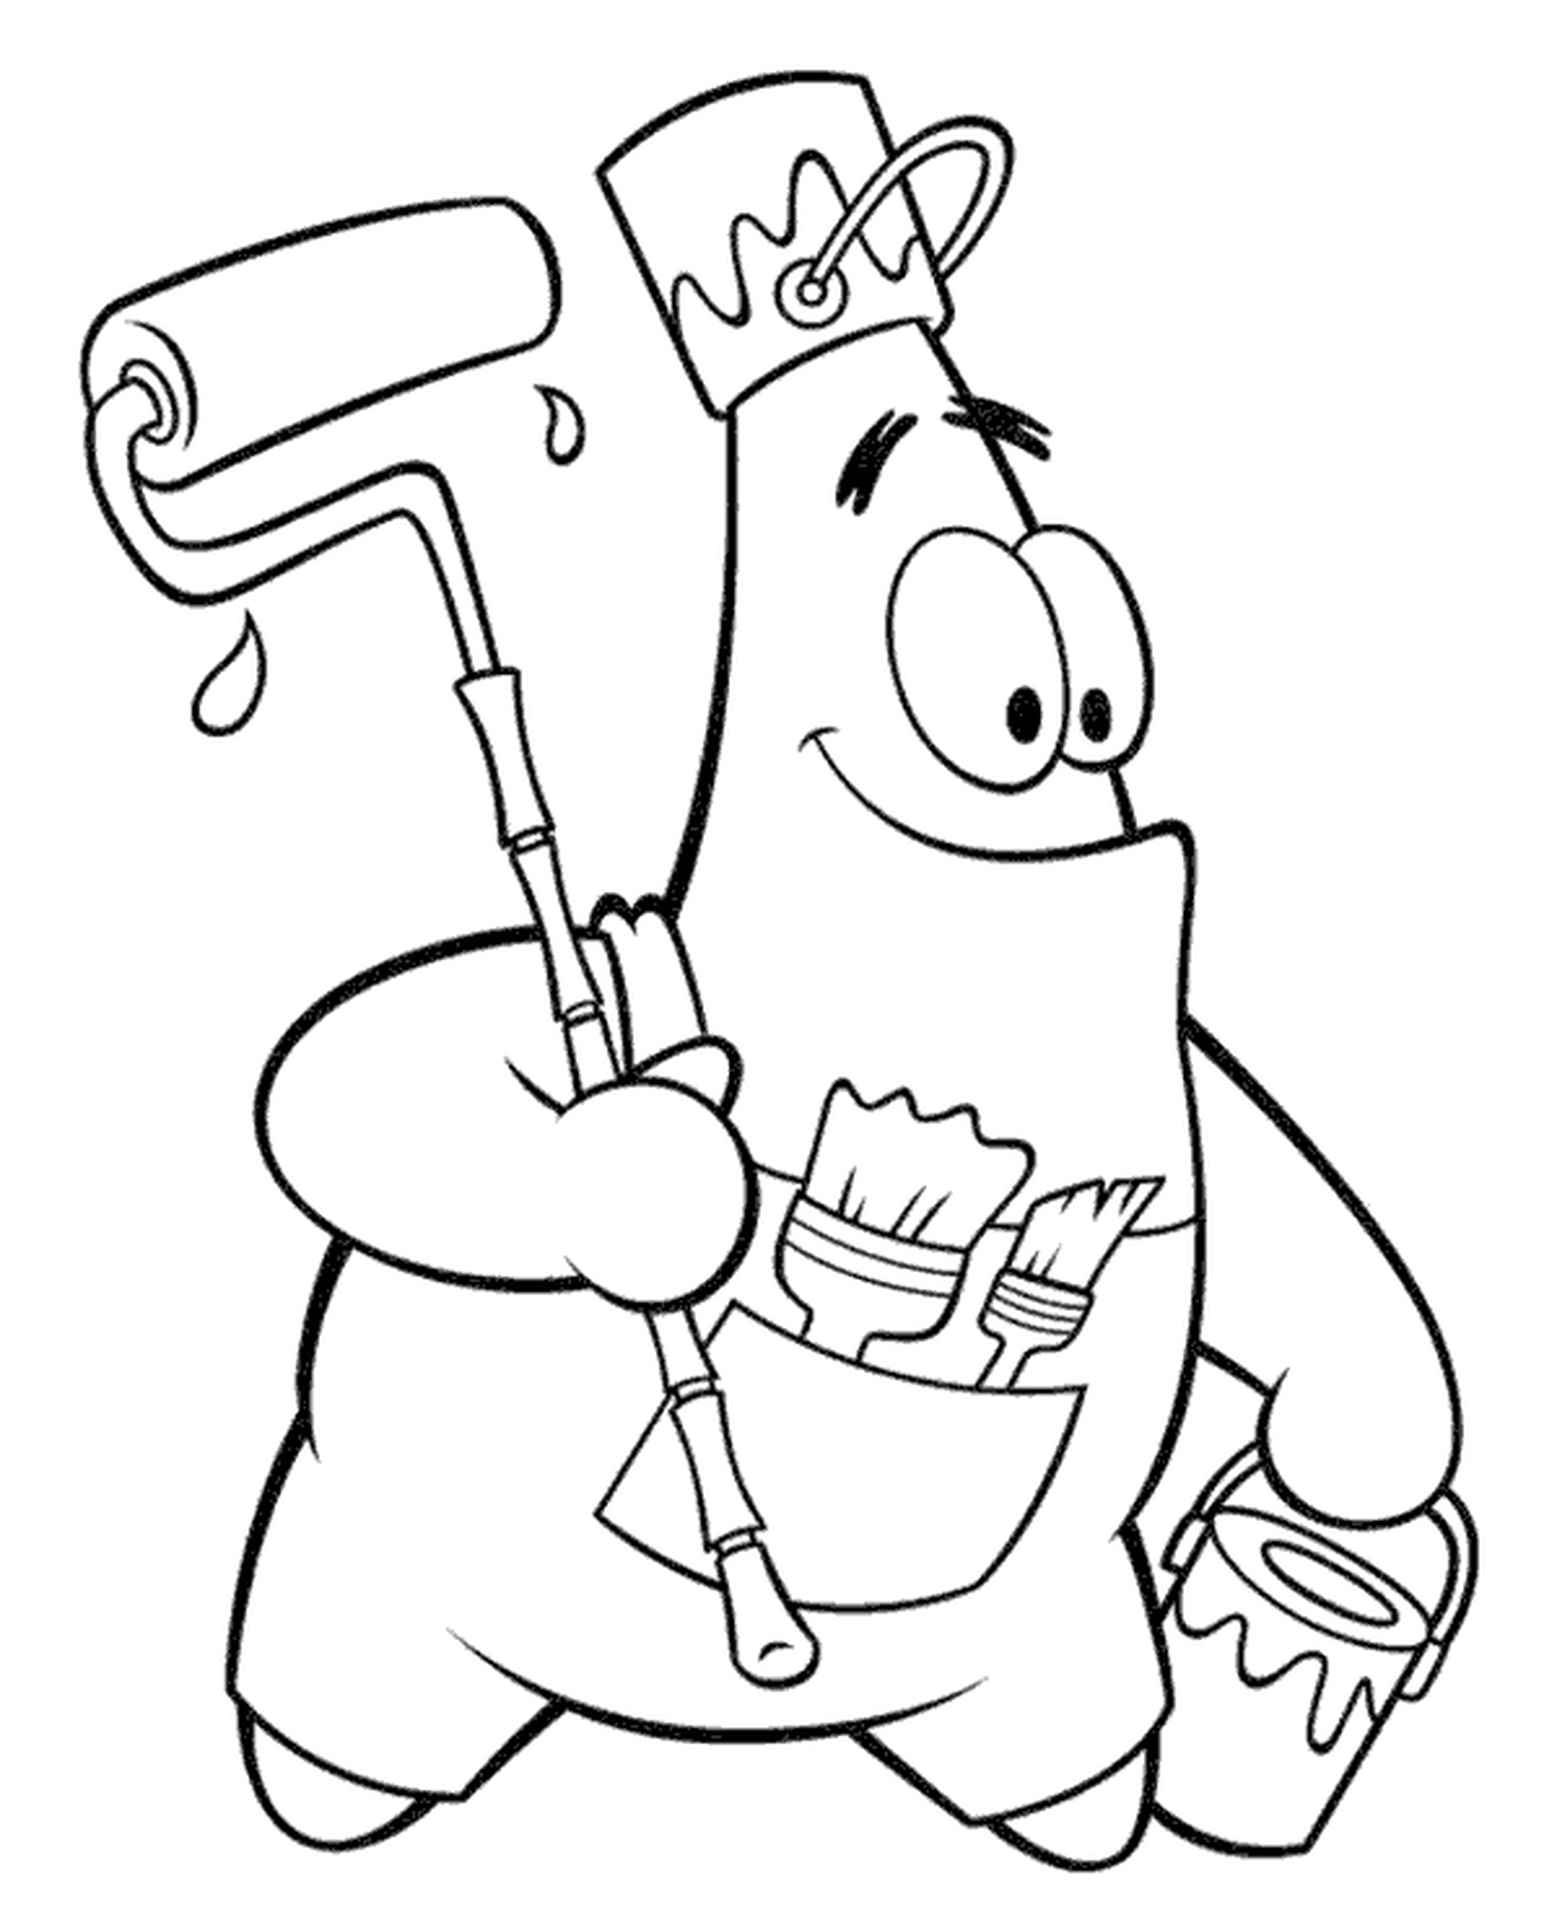 Patrick Works As A Painter In Spongebob Coloring Page